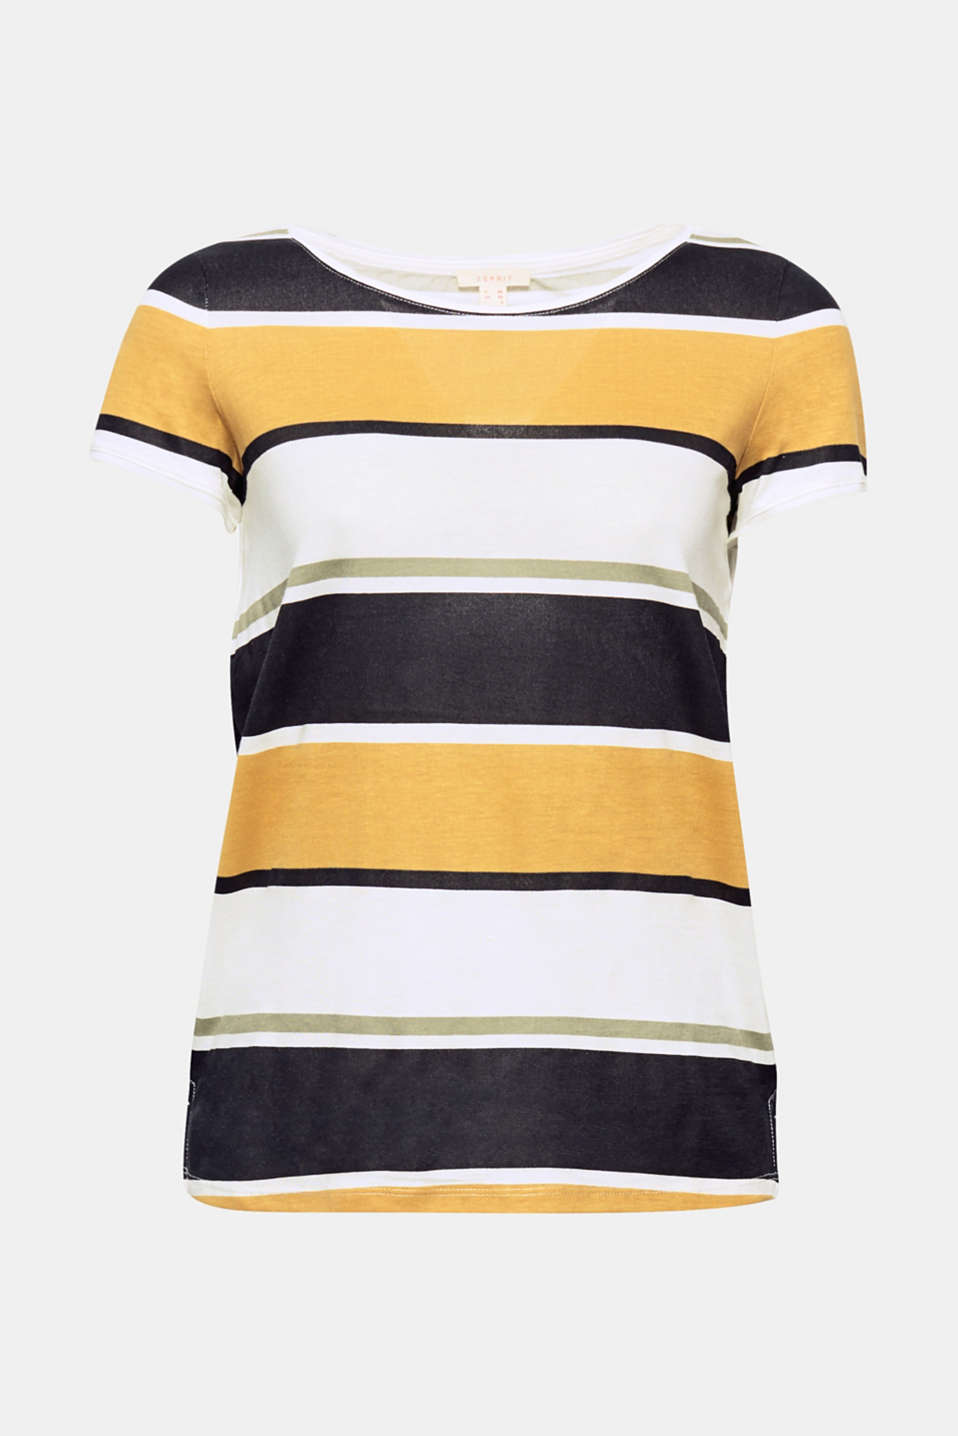 Block stripes on smooth jersey give this top its elegant look!